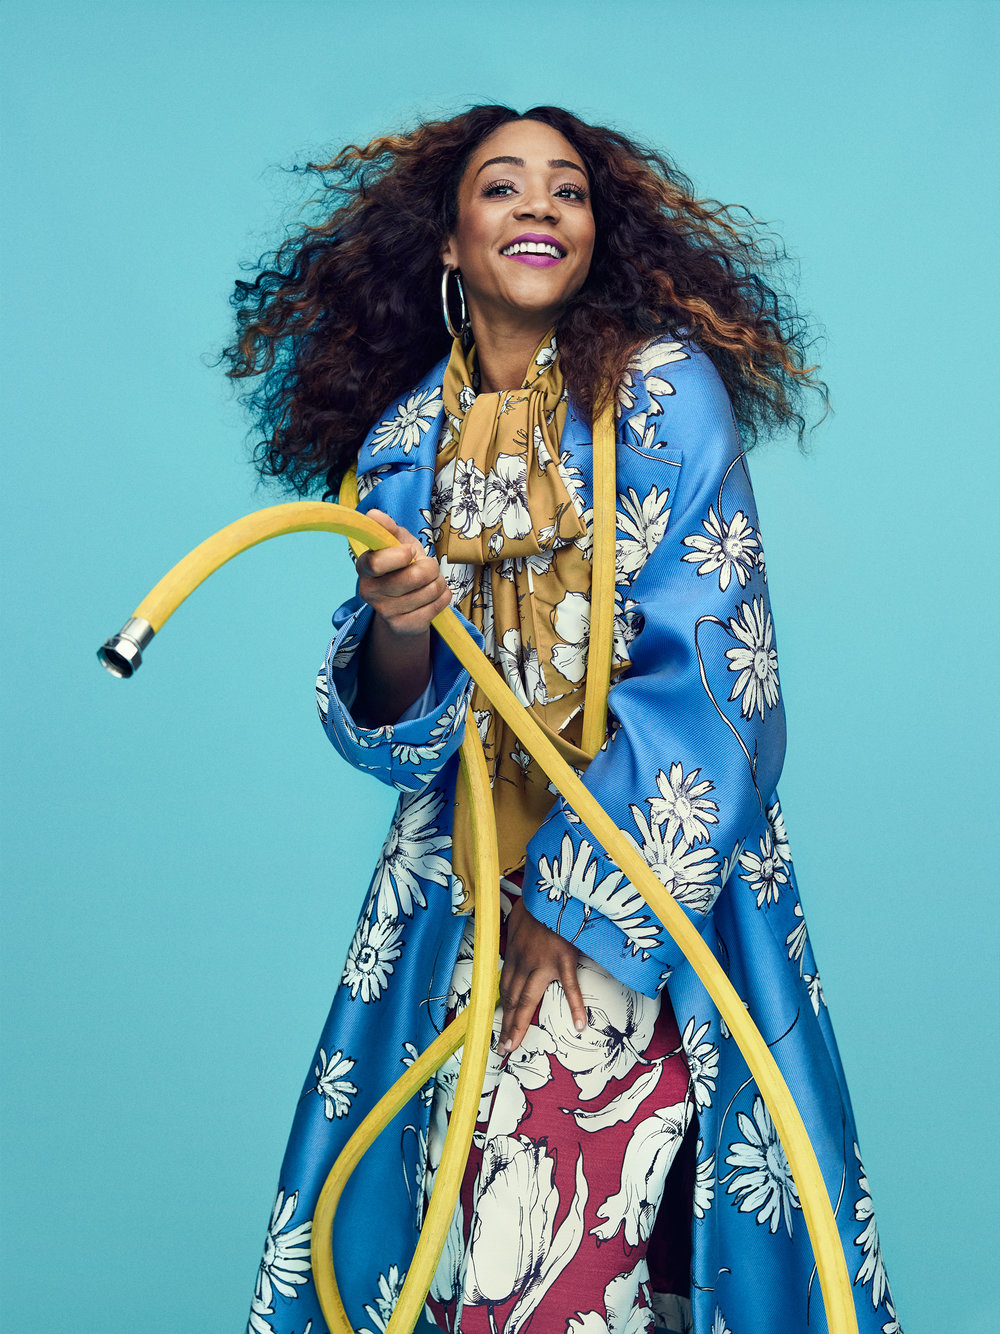 180306_TiffanyHaddish_THR_S01_0171.jpg